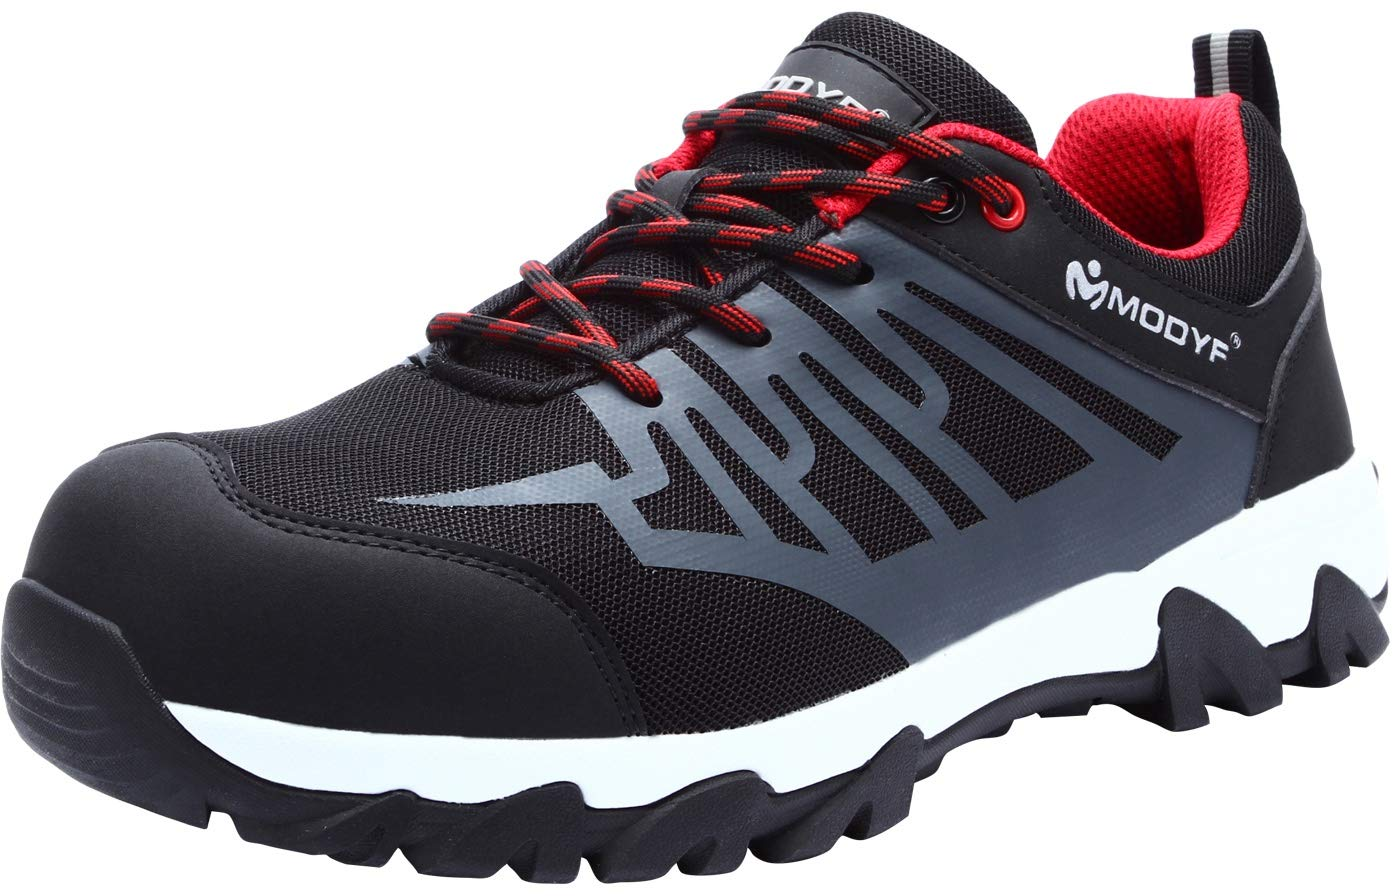 LARNMERN Steel Toe Shoes Men, Safety Work Reflective Strip Puncture Proof Footwear Industrial & Construction Shoe (11.5) Black